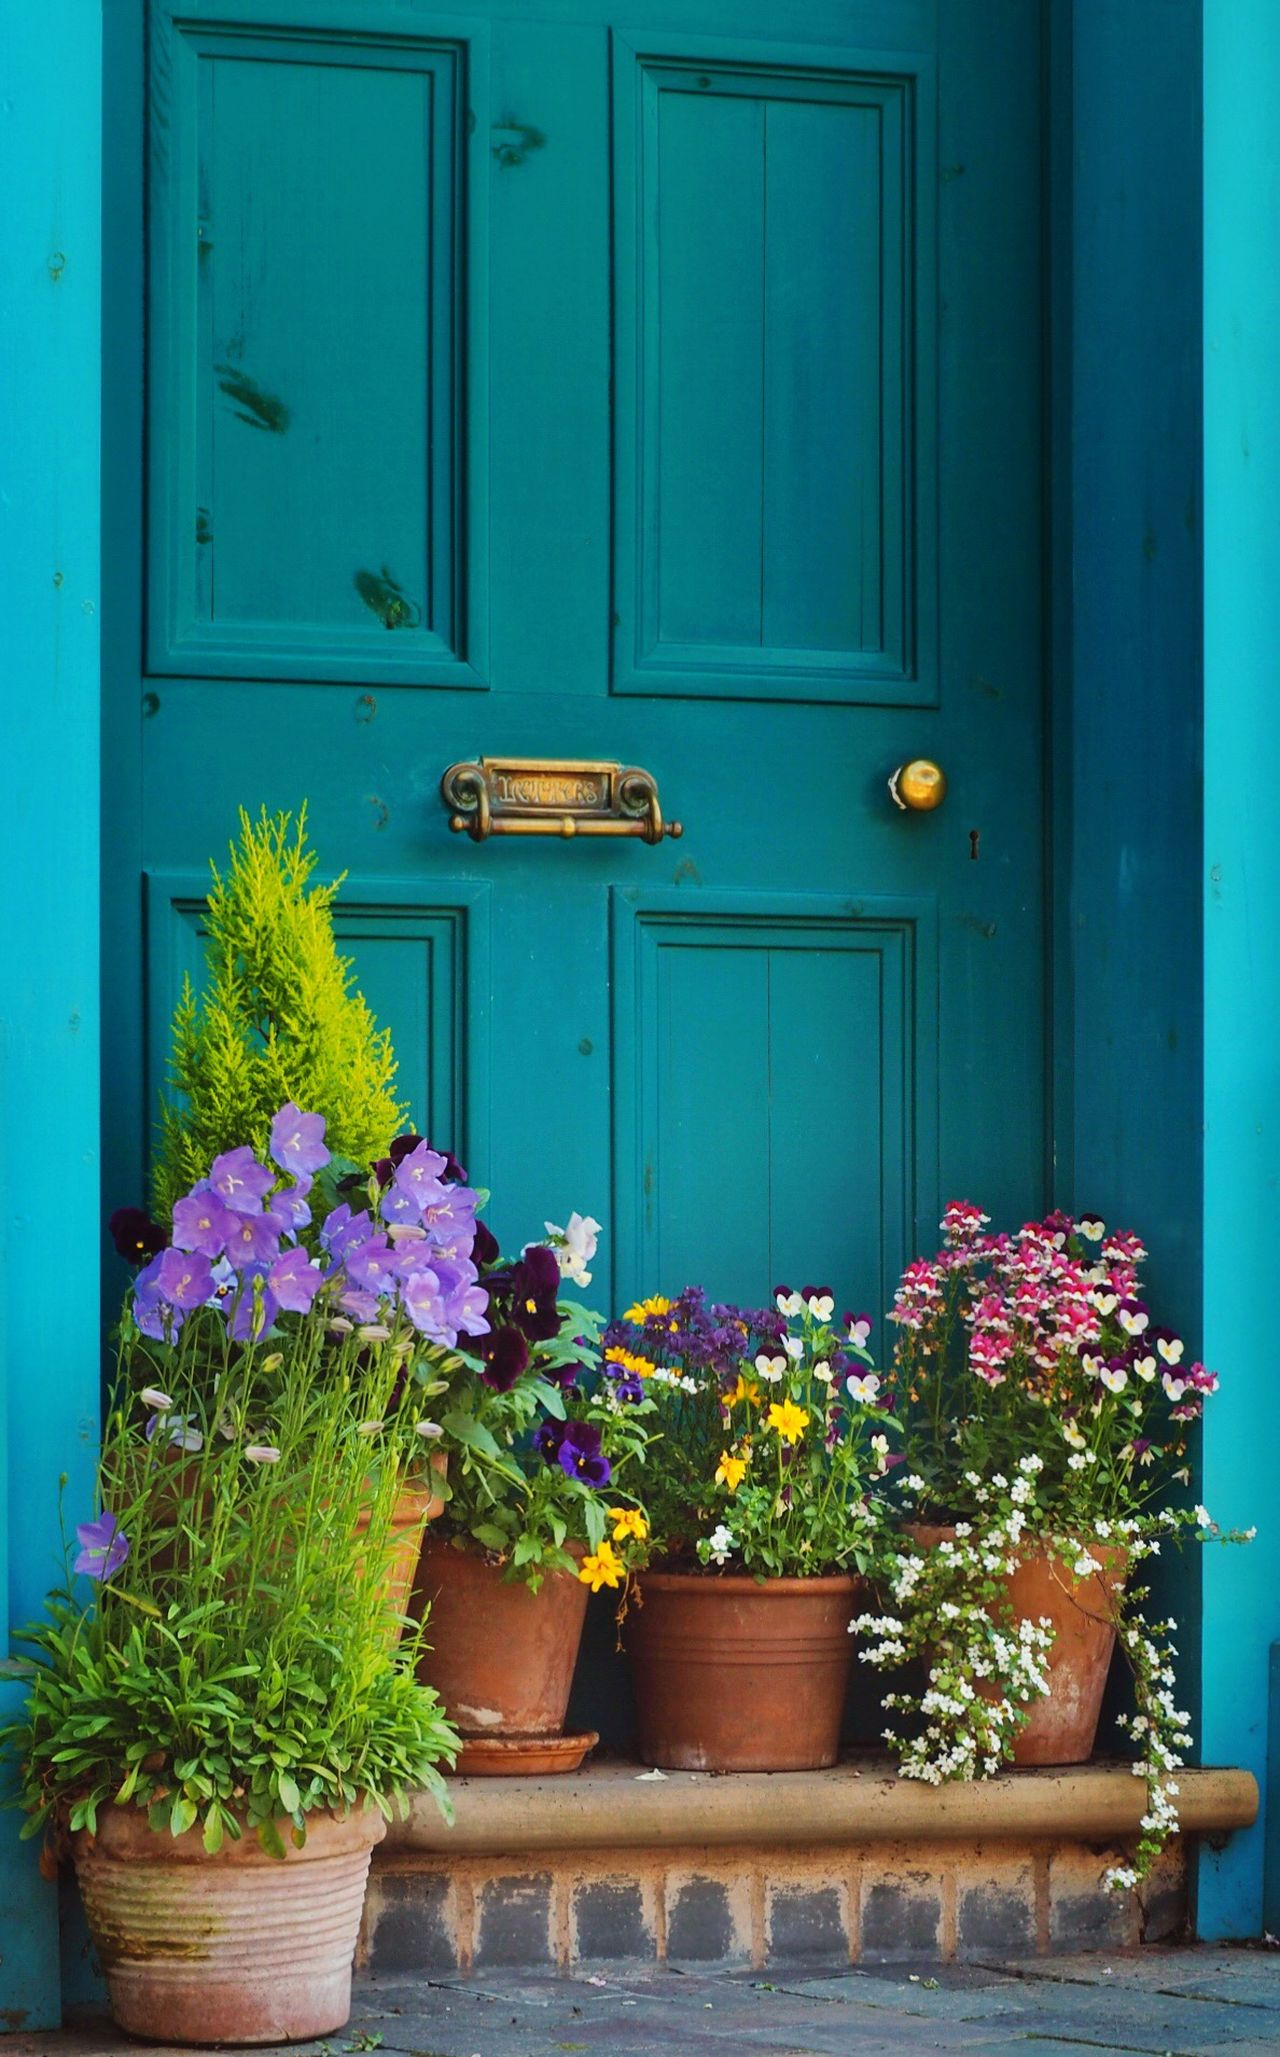 Flowers in a Doorway! Walking Around OlympusPEN Flowers Door Taking Photos Summer Views Doorway Doors Art Is Everywhere